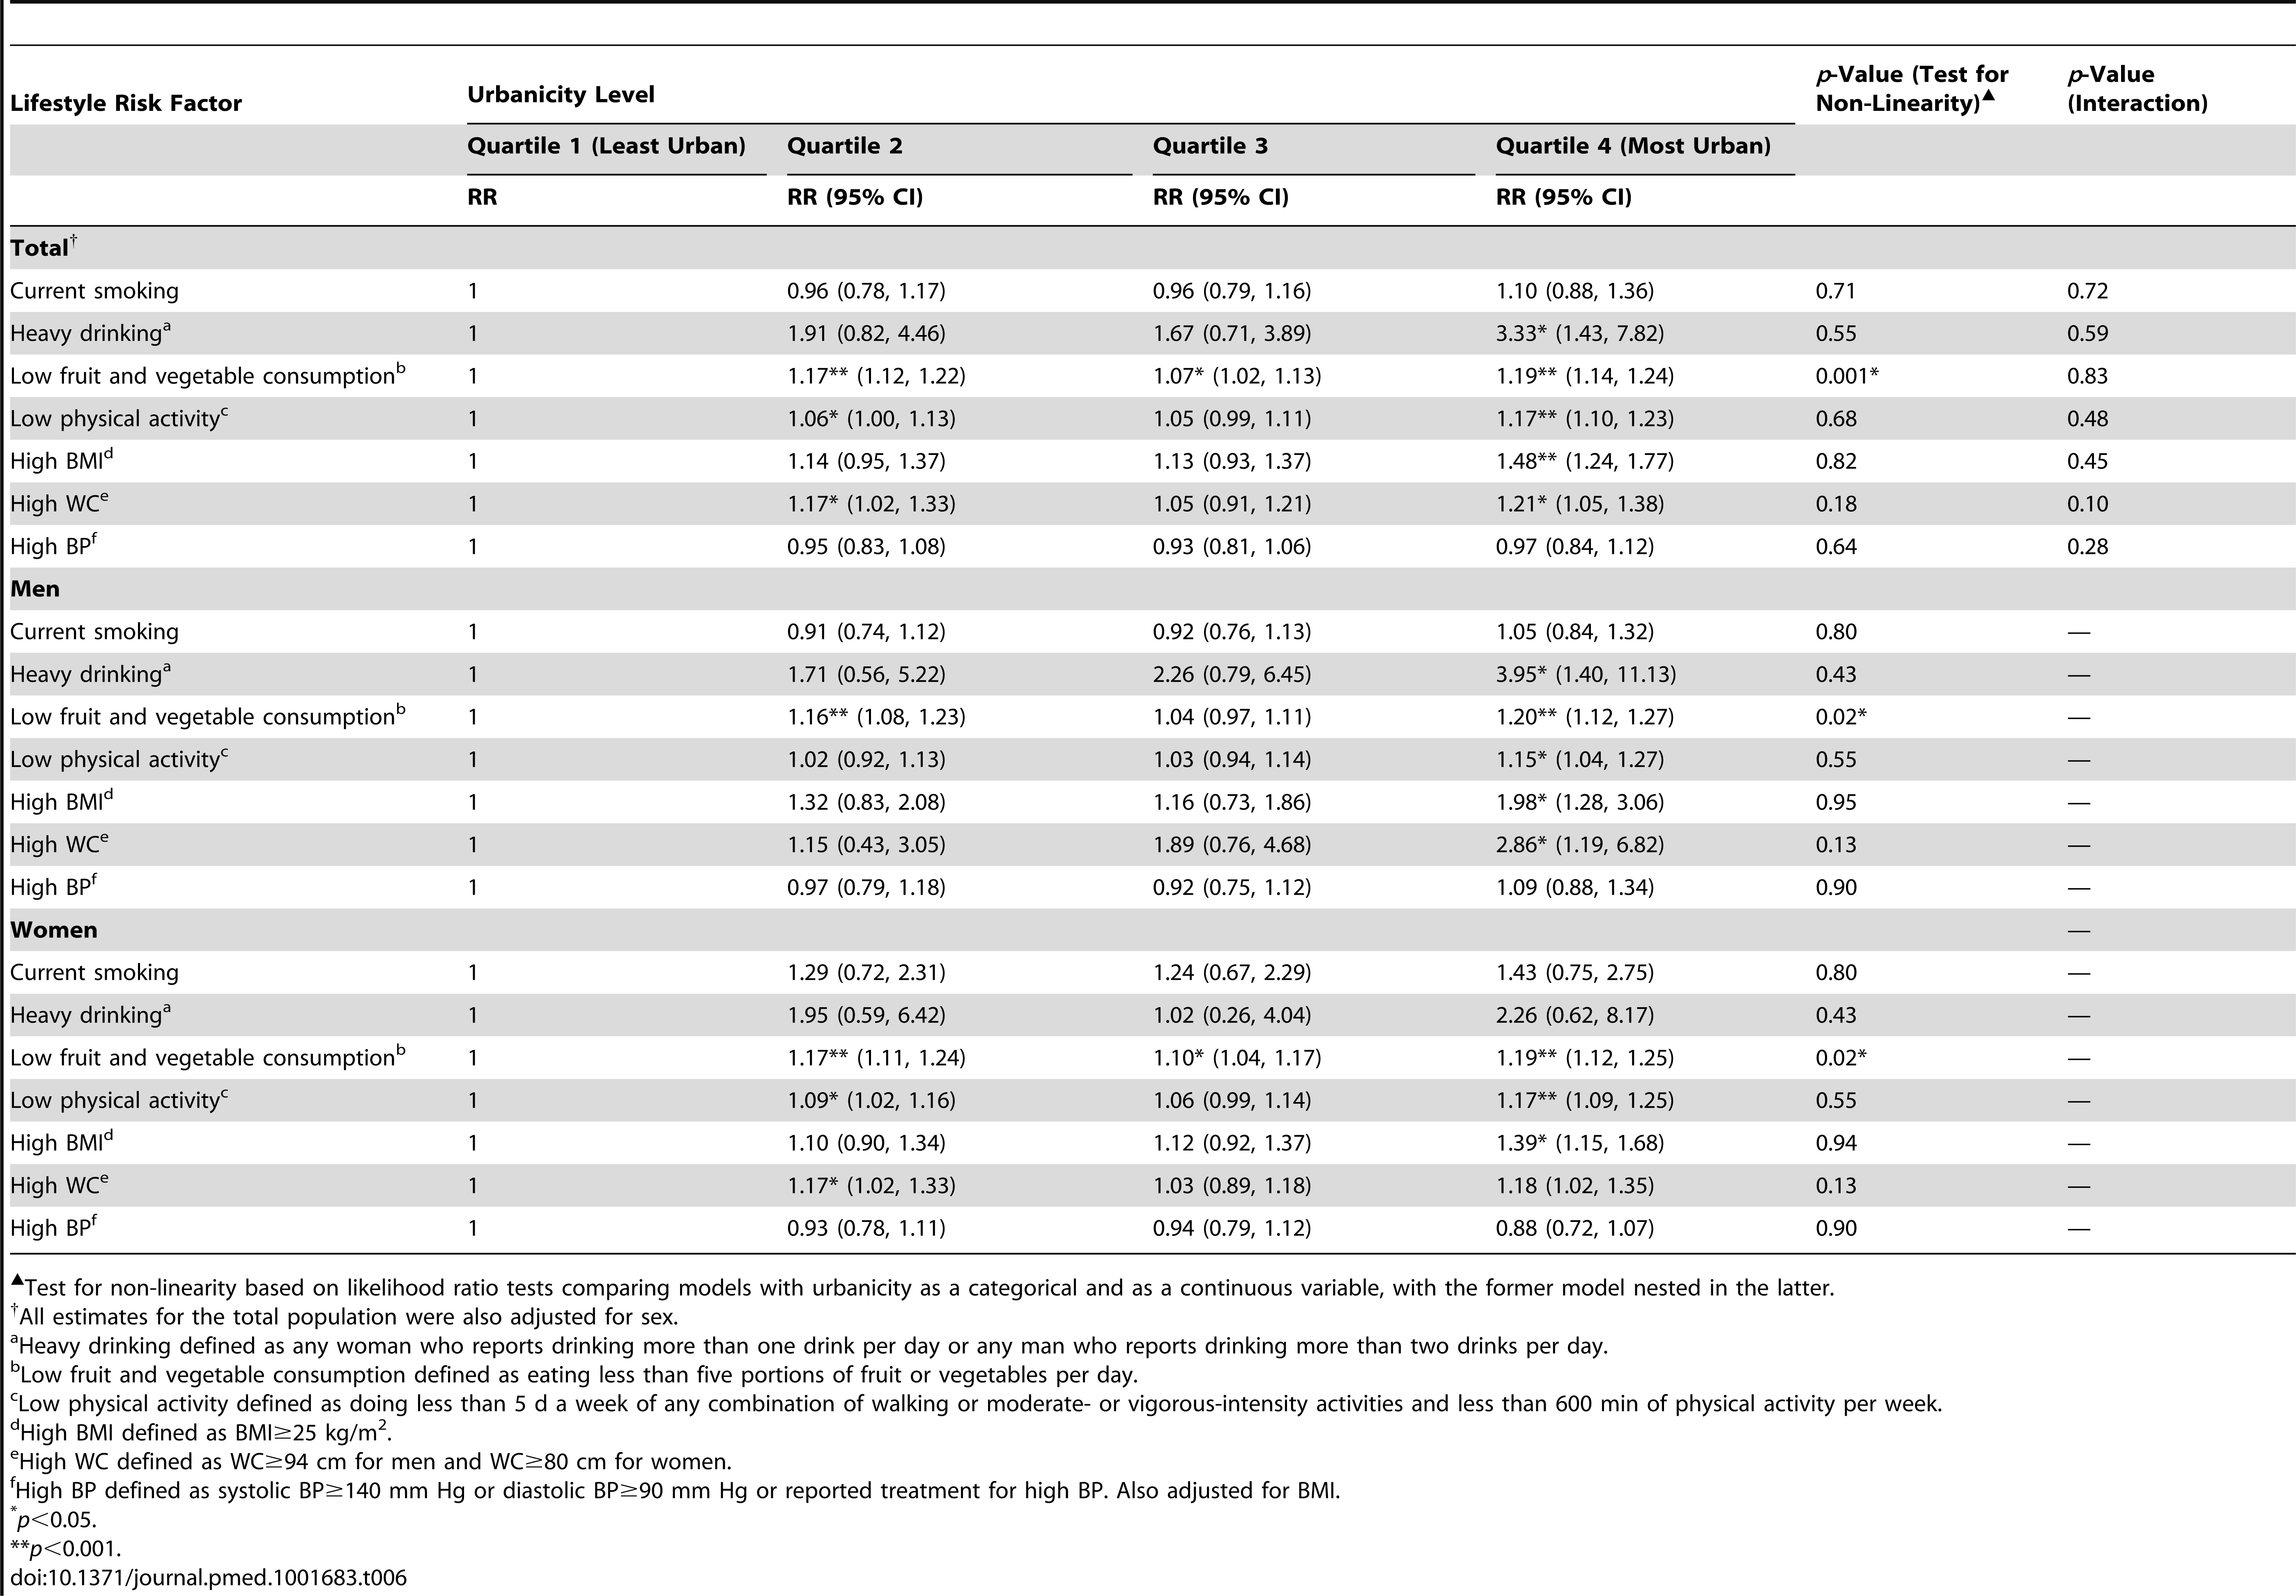 Associations between increasing urbanicity and lifestyle risk factors adjusted for age, socioeconomic status, and clustering at household level, General Population Cohort, Uganda, 2011.